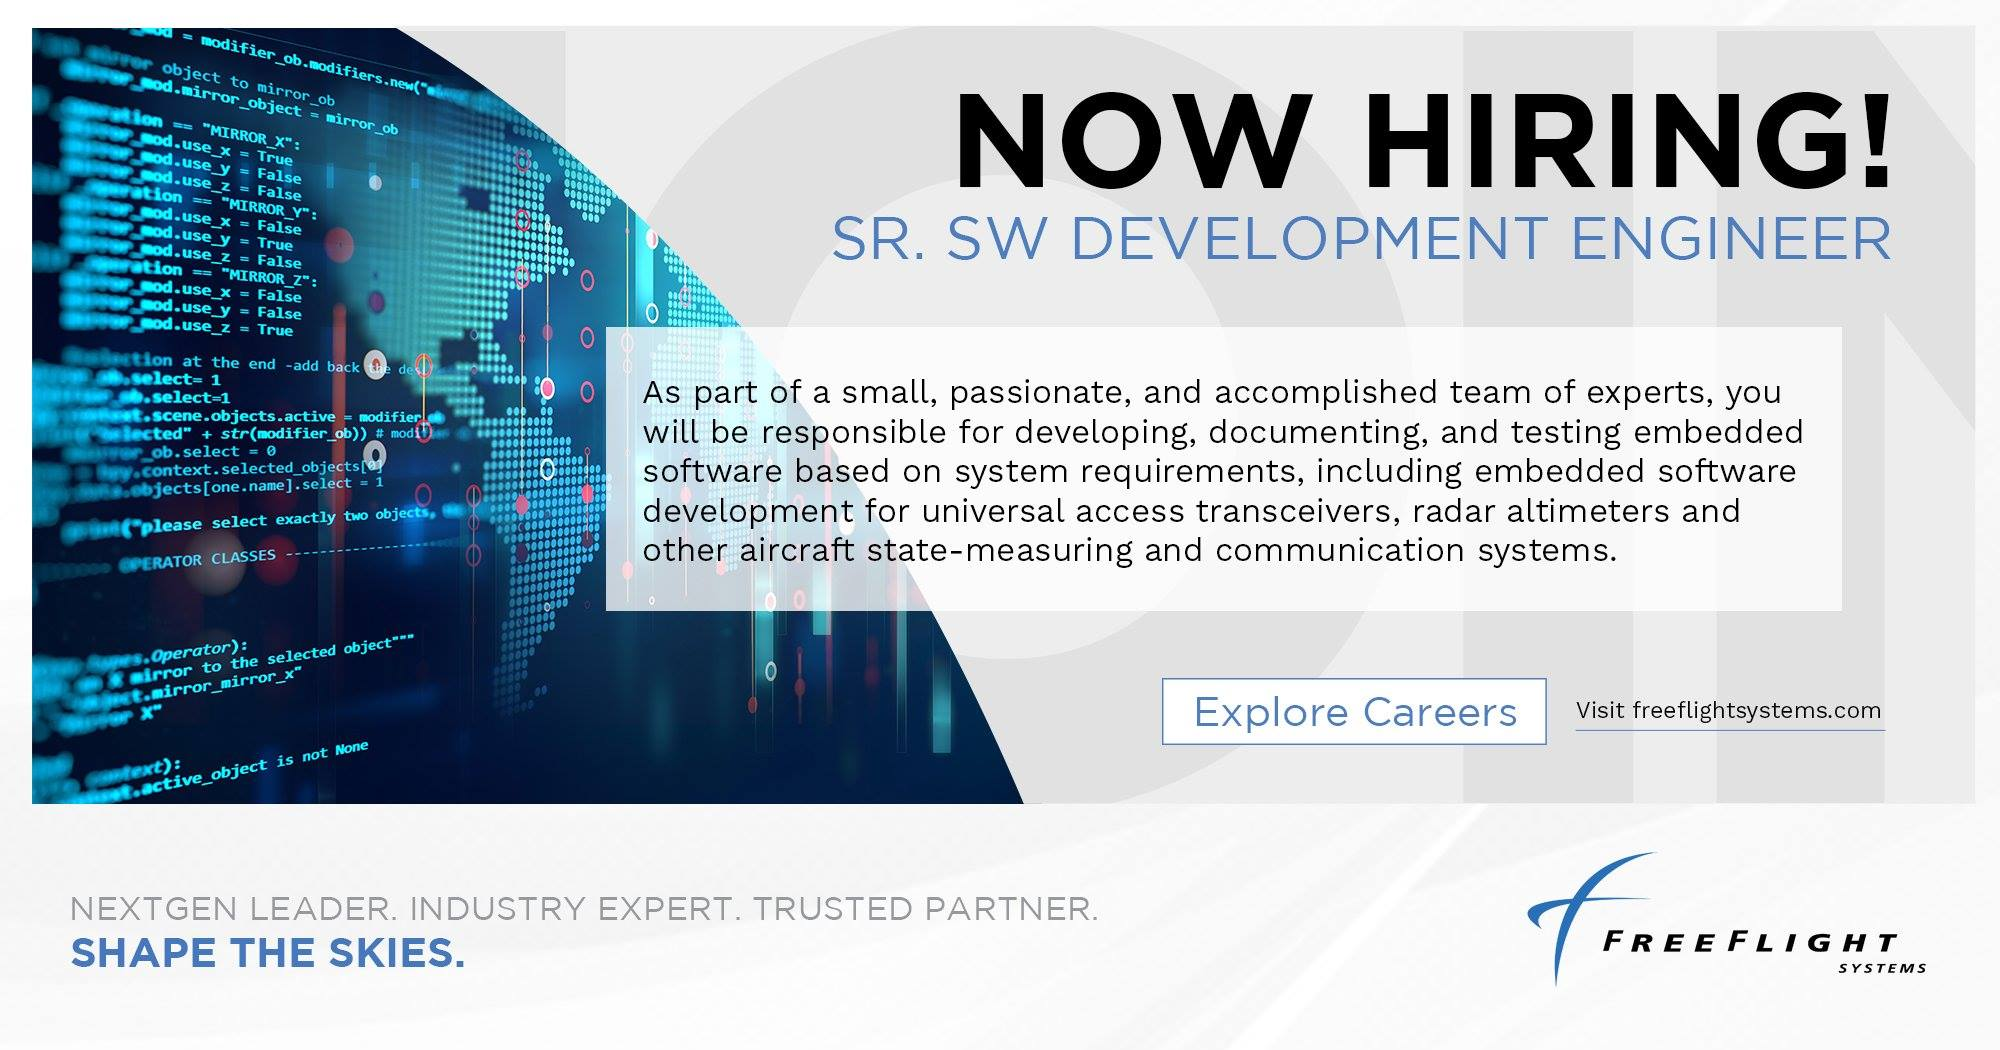 Sr. SW Development Engineer